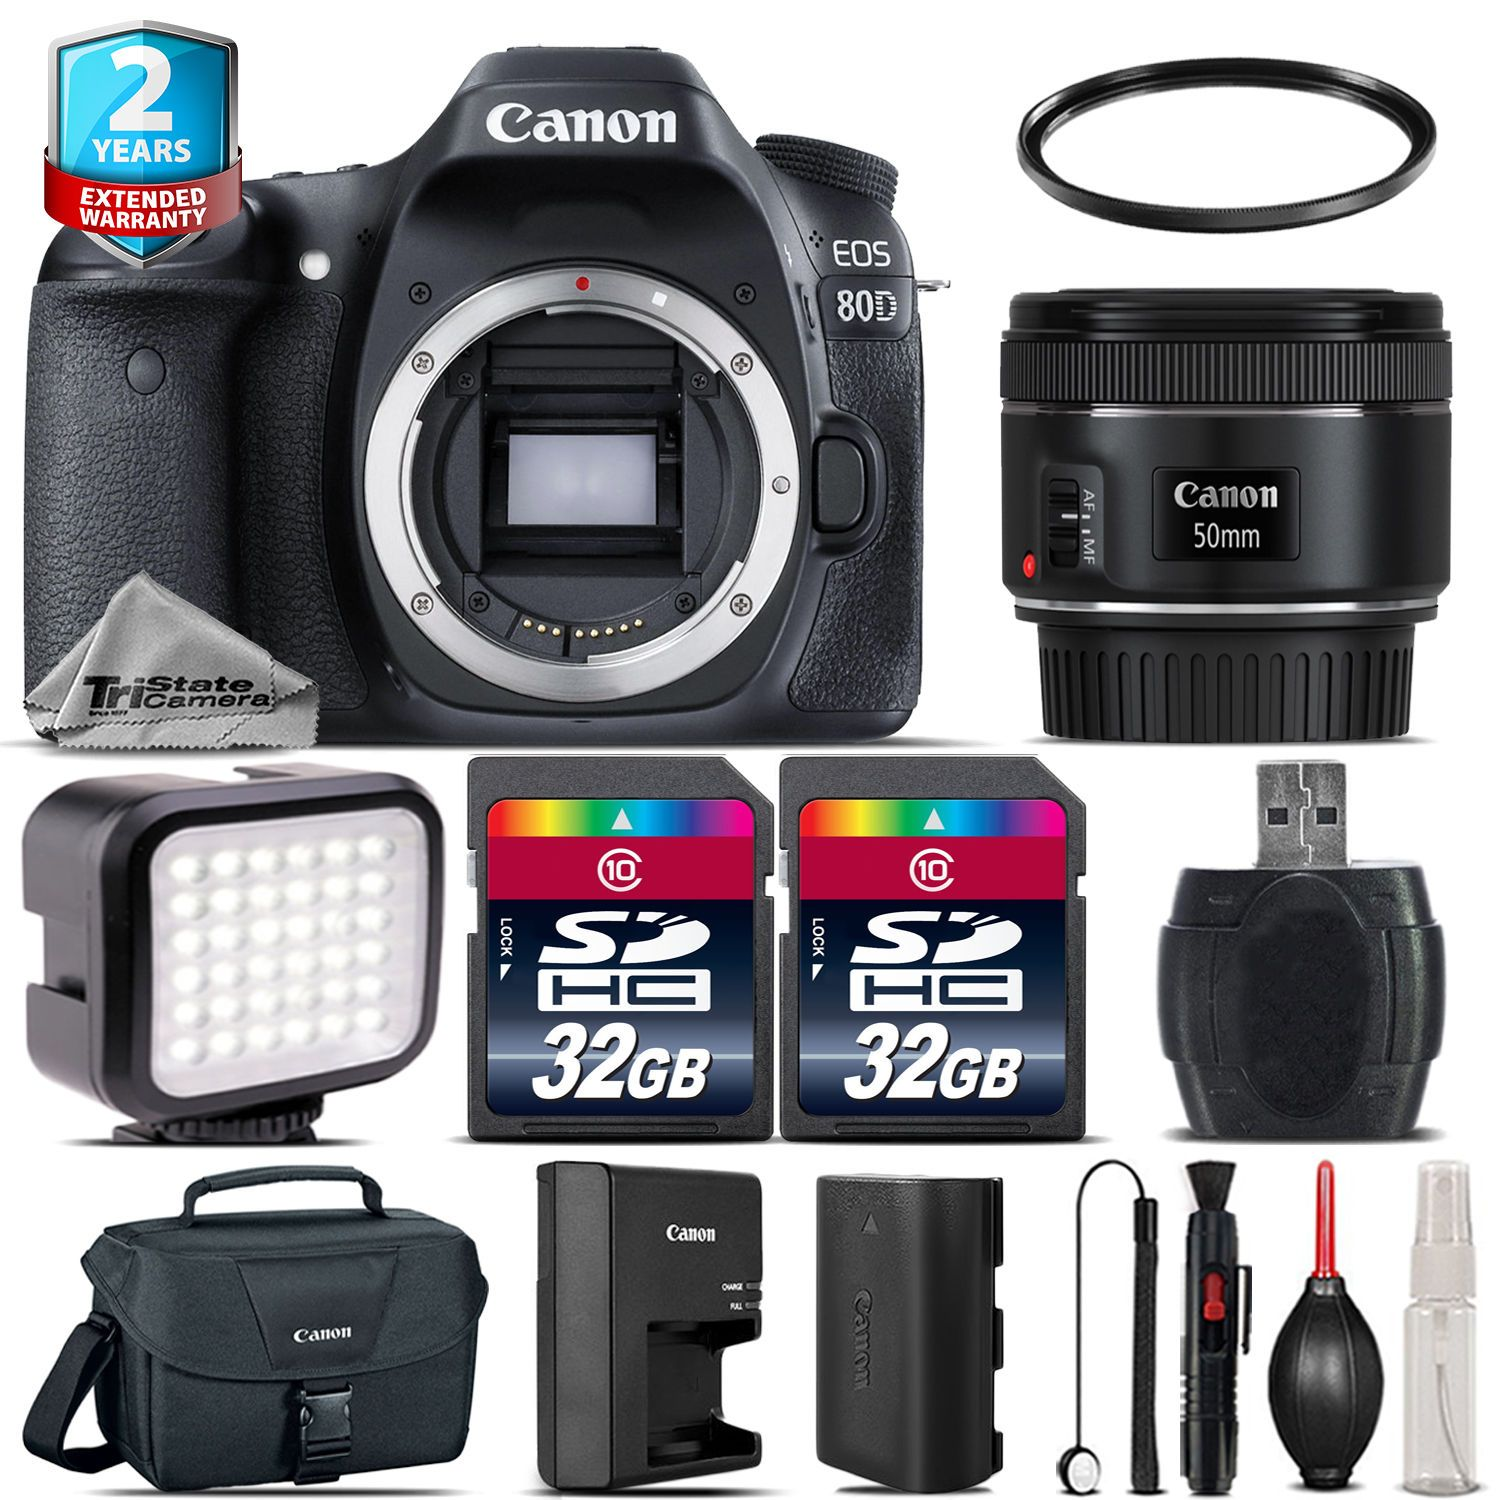 Canon Eos 80d Dslr Camera 50mm 18 Stm Led Light Case 64gb 2yr Wi Fi With 200mm Warranty